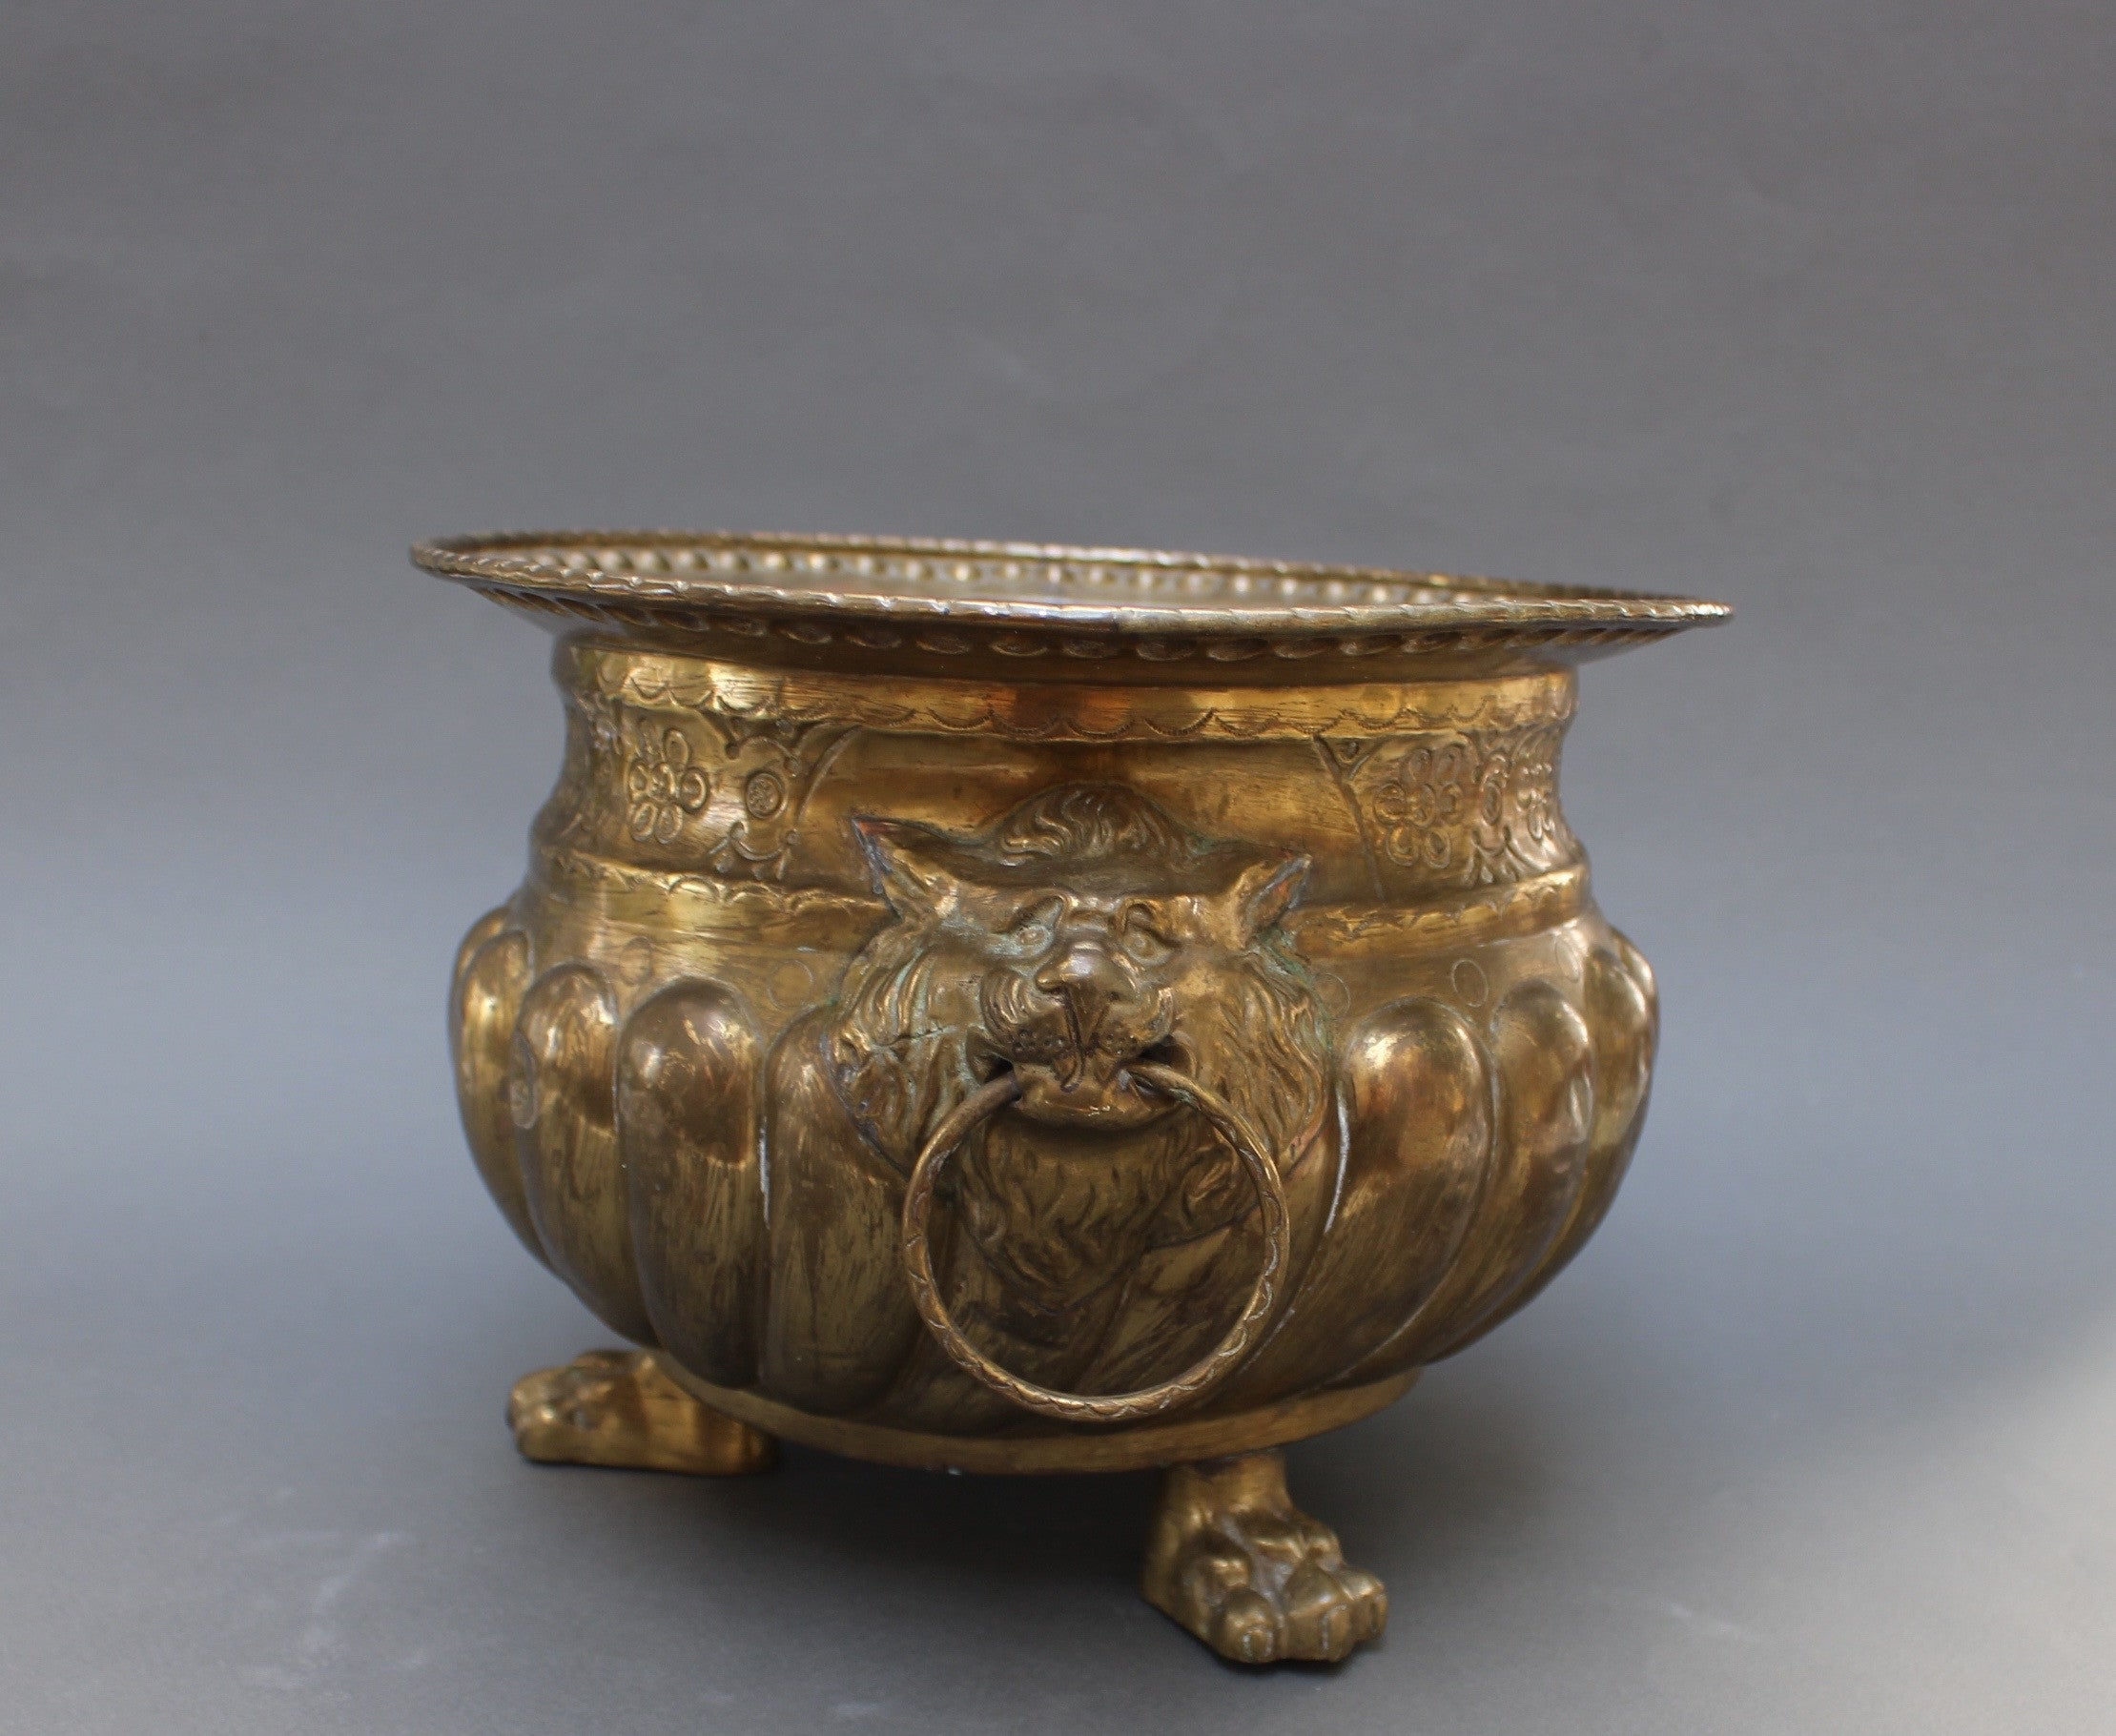 Three-Legged French Brass Pot with Lion Motif (c. Early 20th Century)